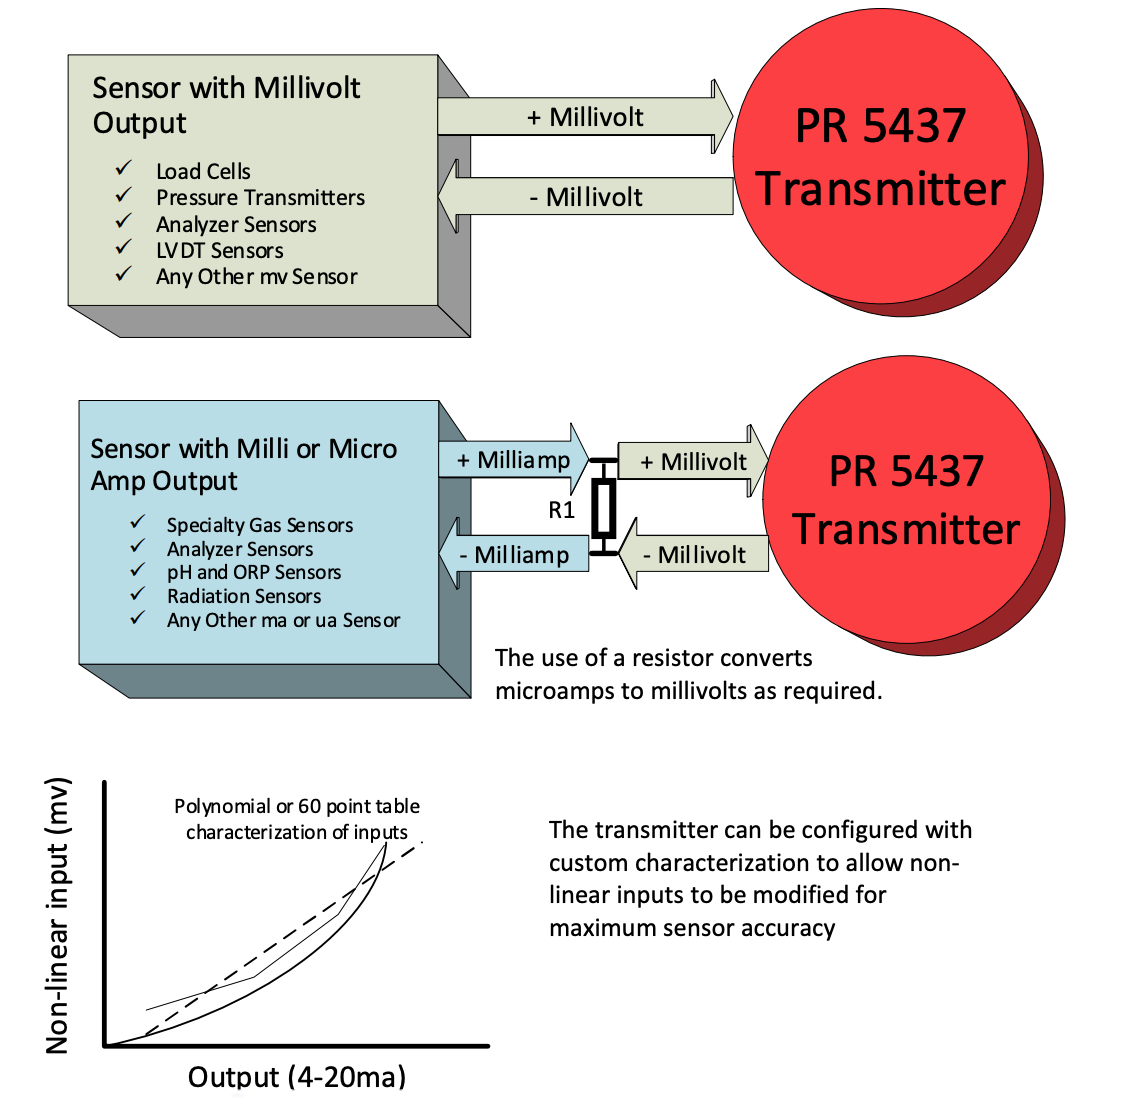 A Temperature Transmitter That Can Be Used With Inputs Other Than Thermocouple and RTD